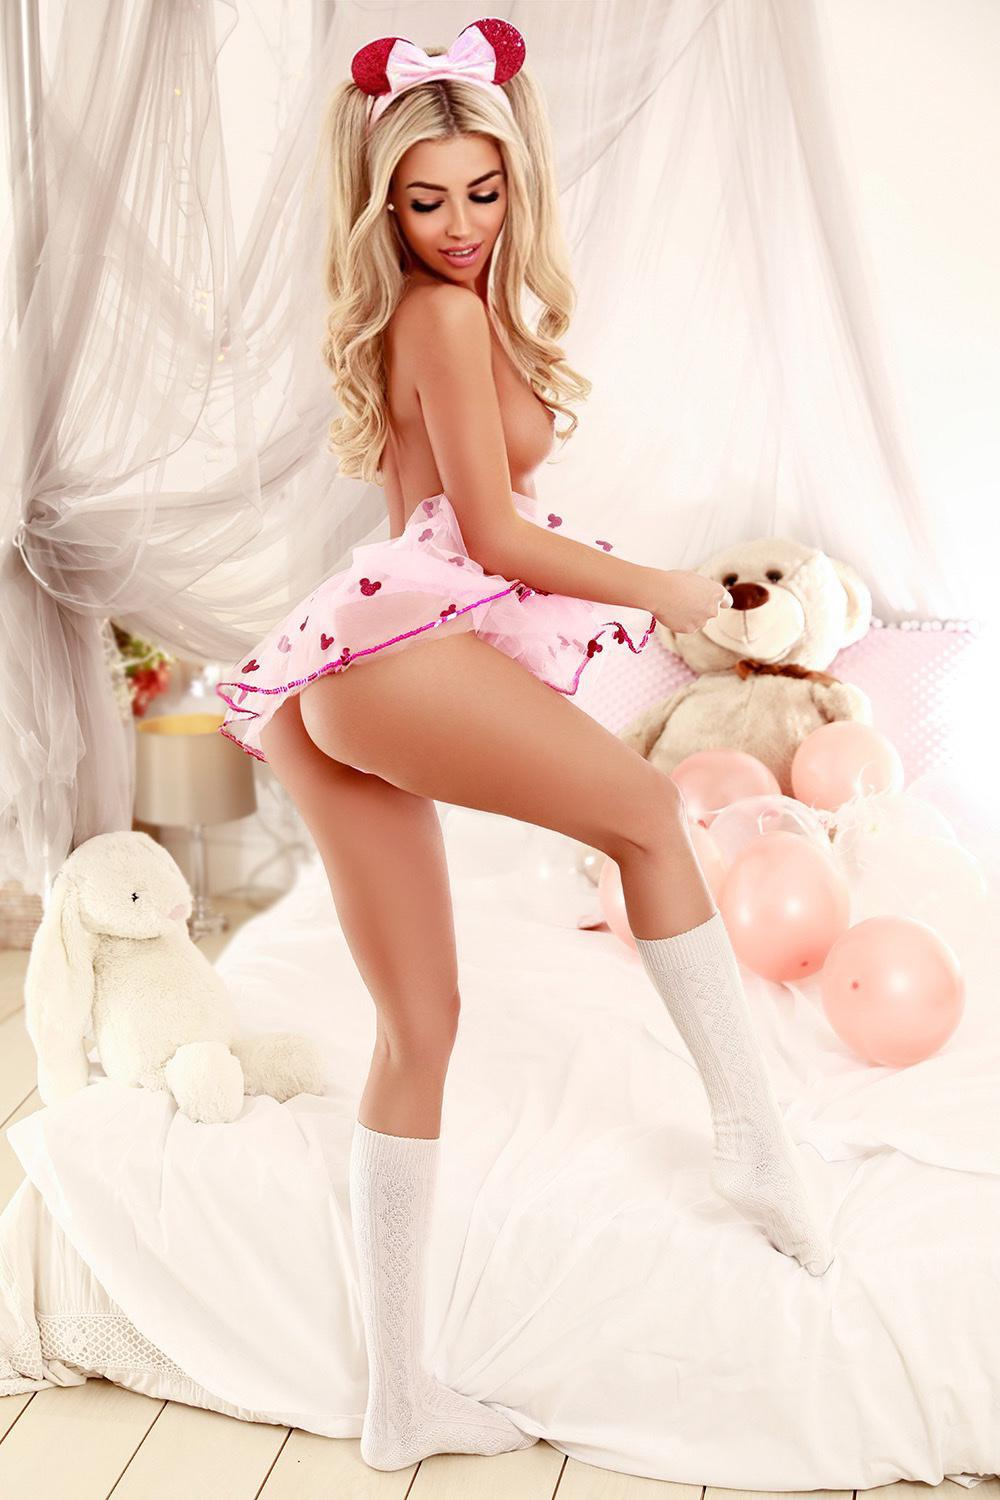 Roleplay London escort Ada in a pink dress